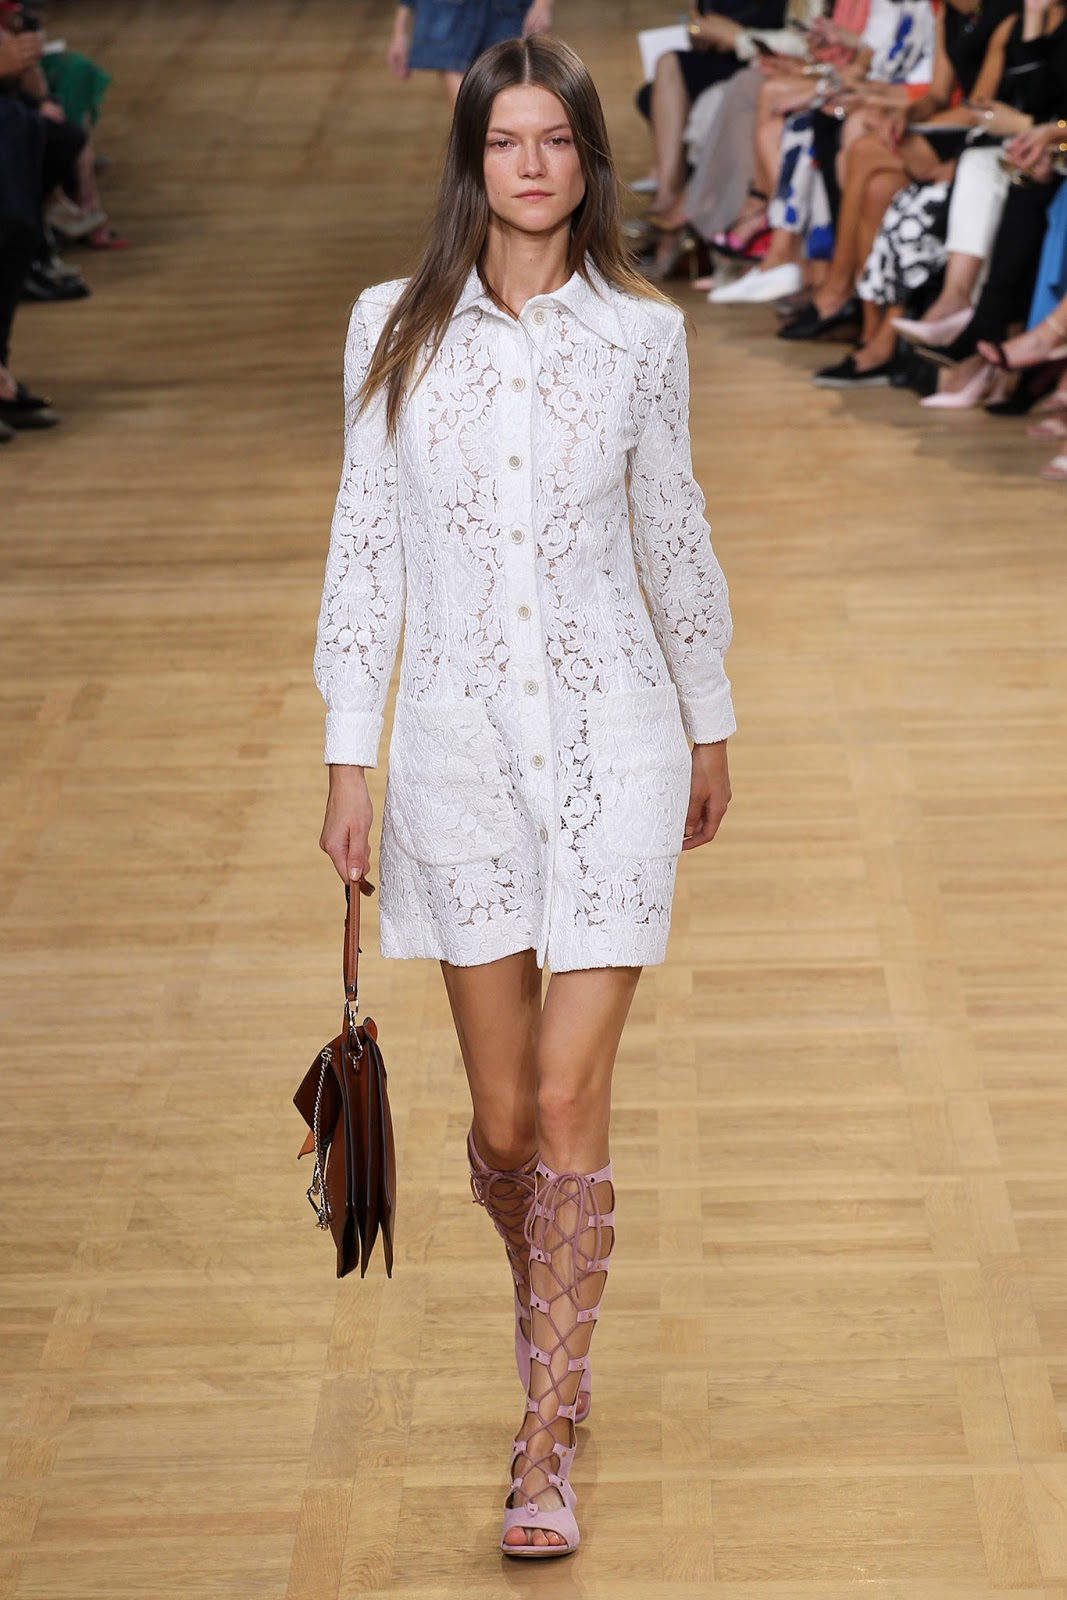 spring/summer 2015 trends / shirtdress / history of shirt dress / chloe spring 2015 / via fashioned by love british fashion blog